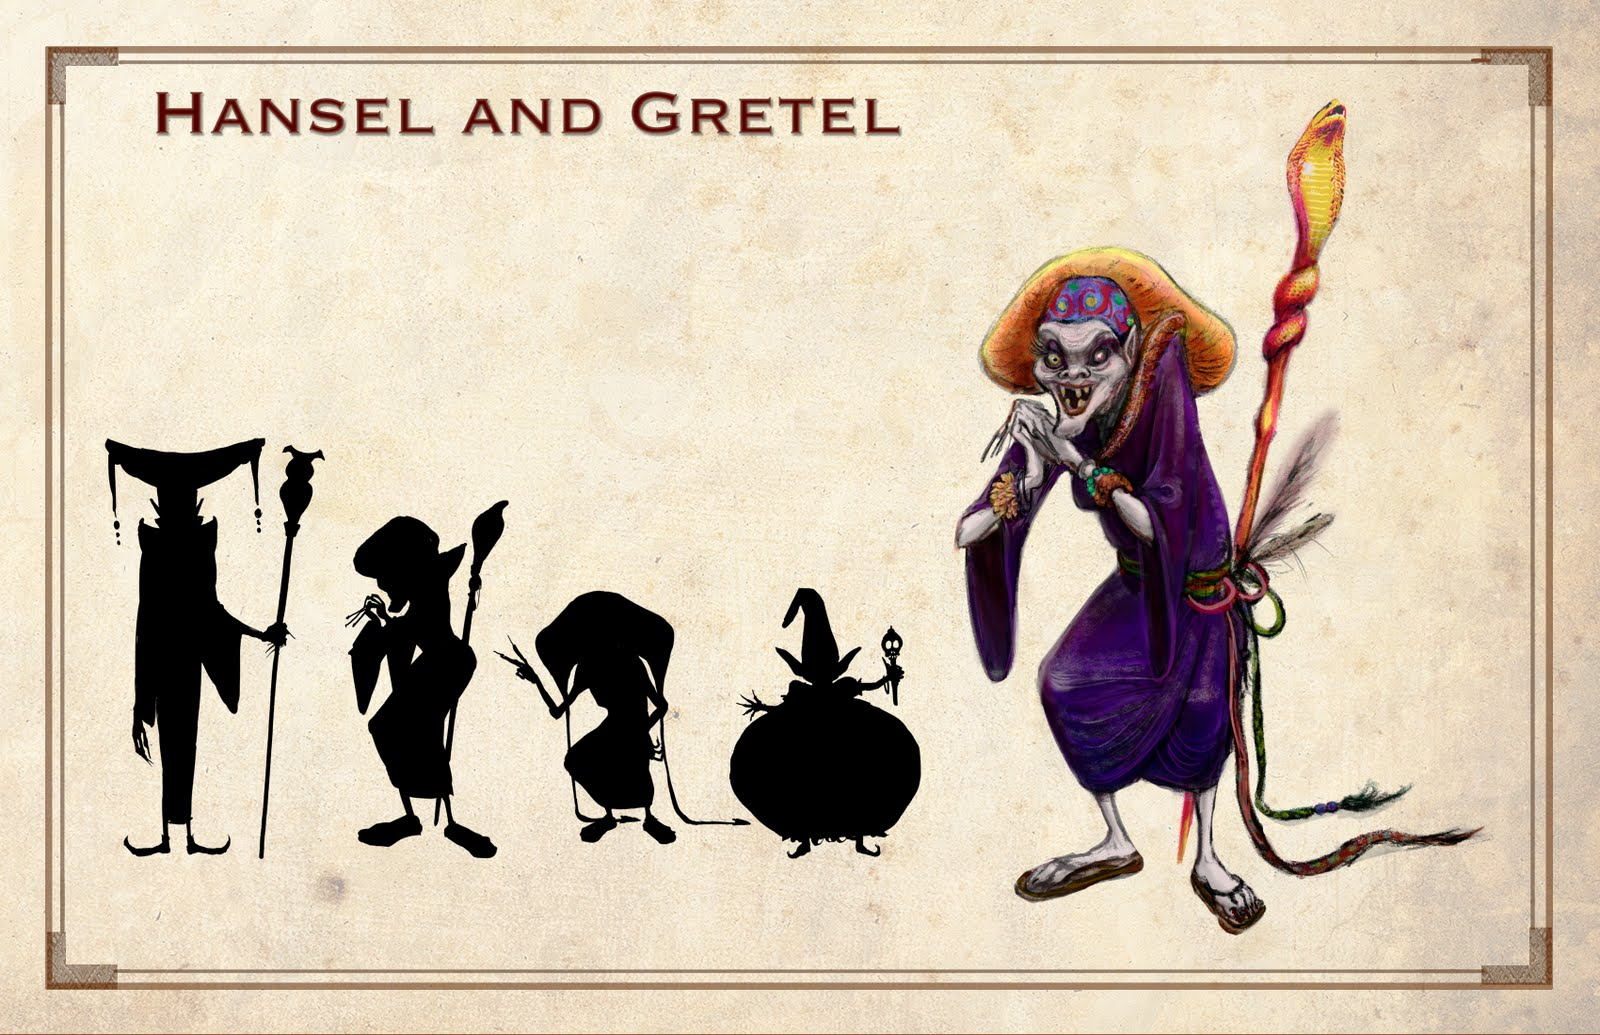 Drawn witchcraft hansel and gretel And project and Gretel the